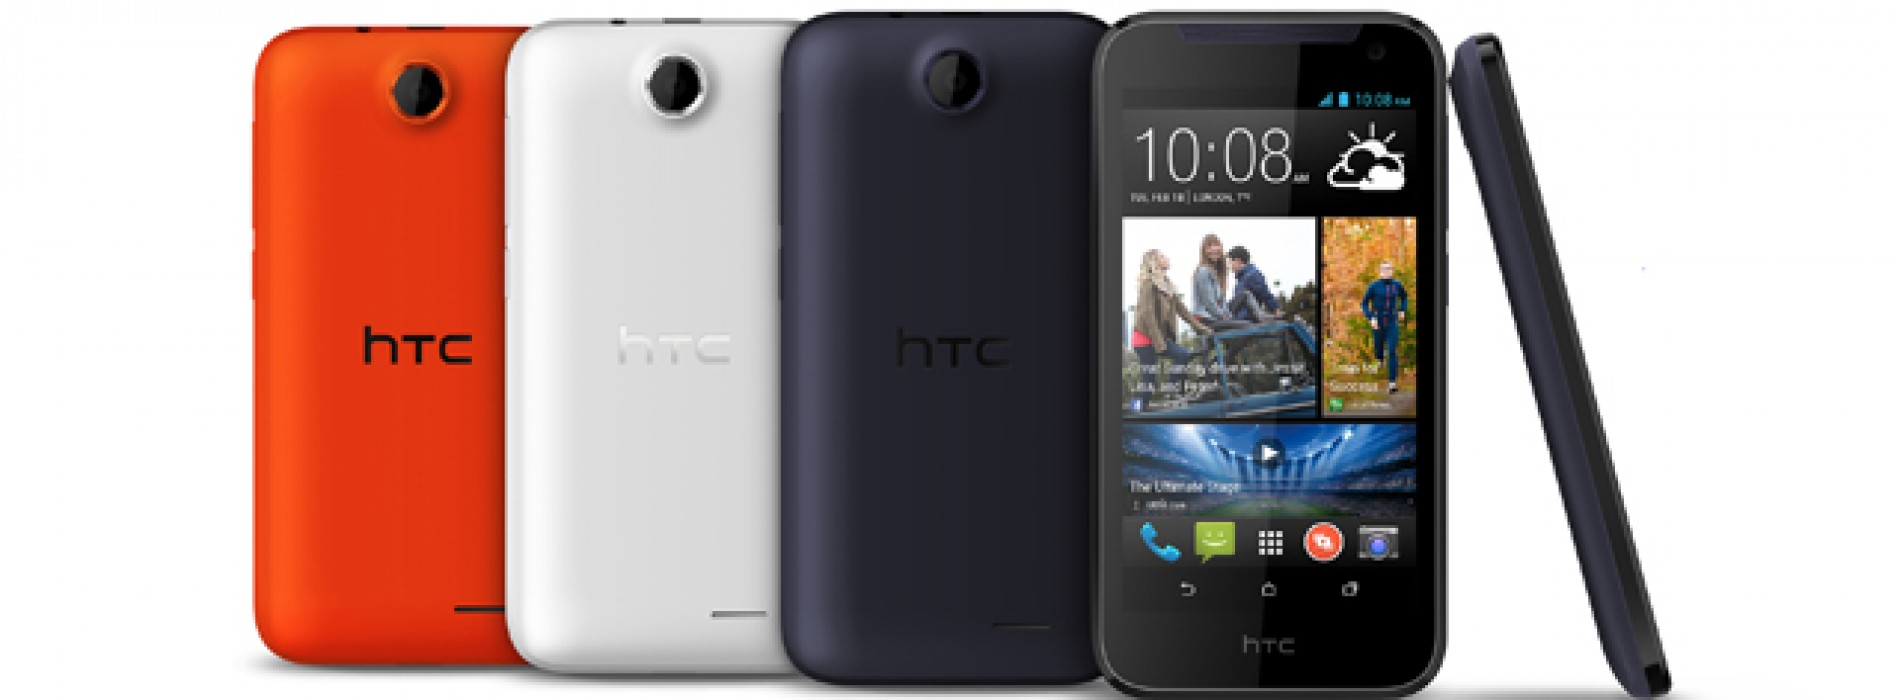 HTC introduces entry-level Desire 310